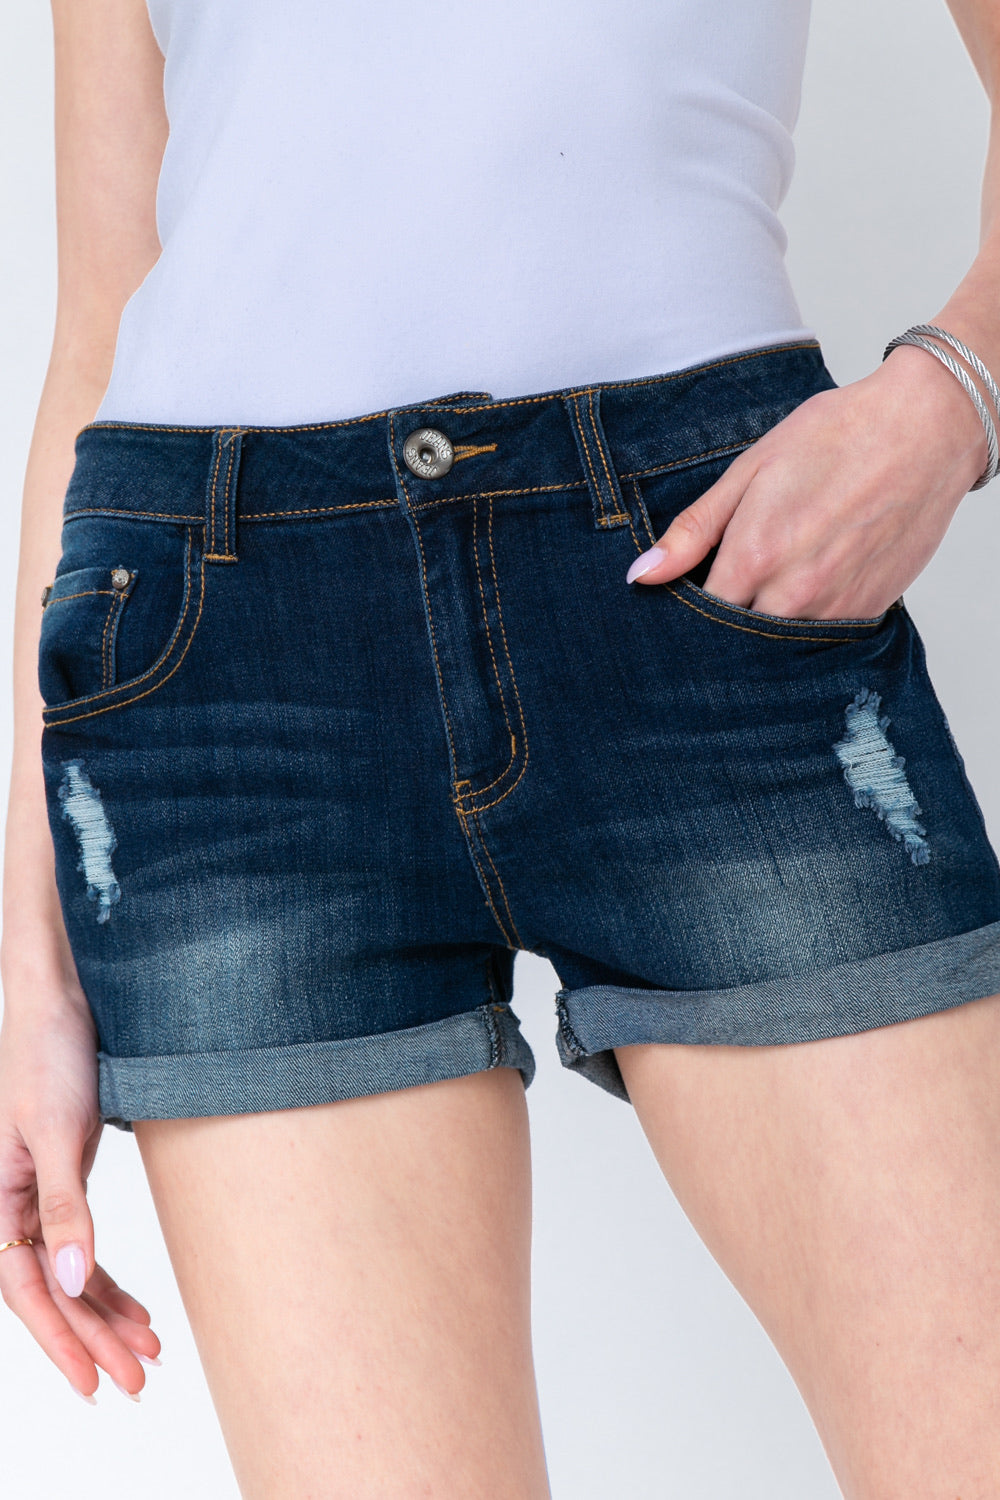 Casual Denim Cuffed Shorts S-L (Plus Size also available!!)